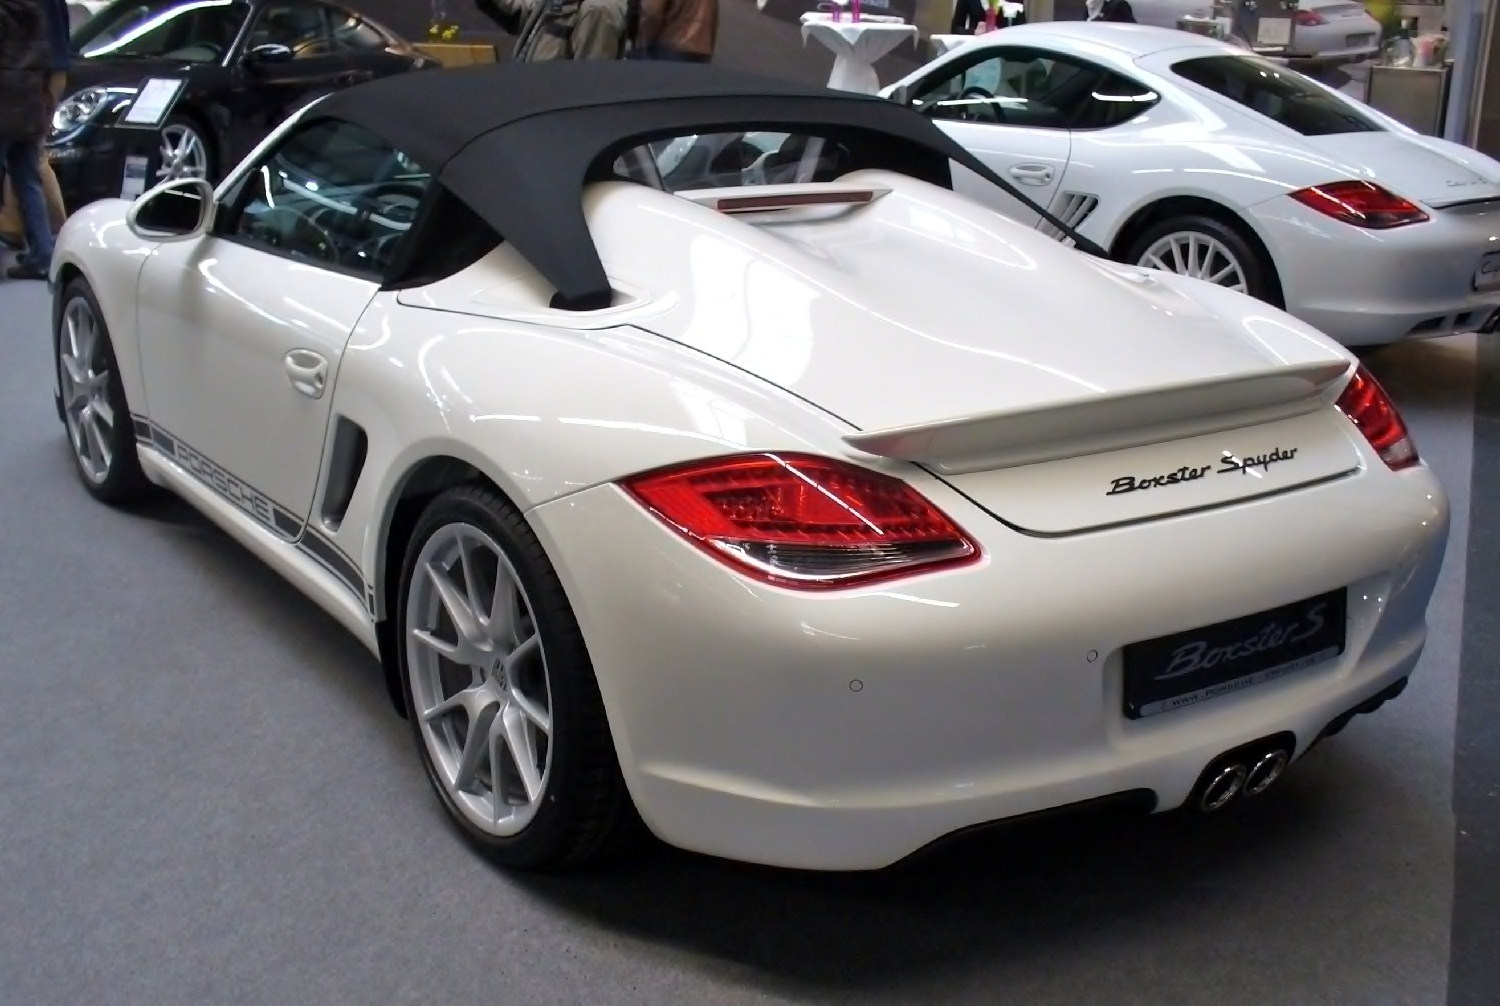 File Porsche Boxster S Spyder Heck Ame Jpg Wikimedia Commons